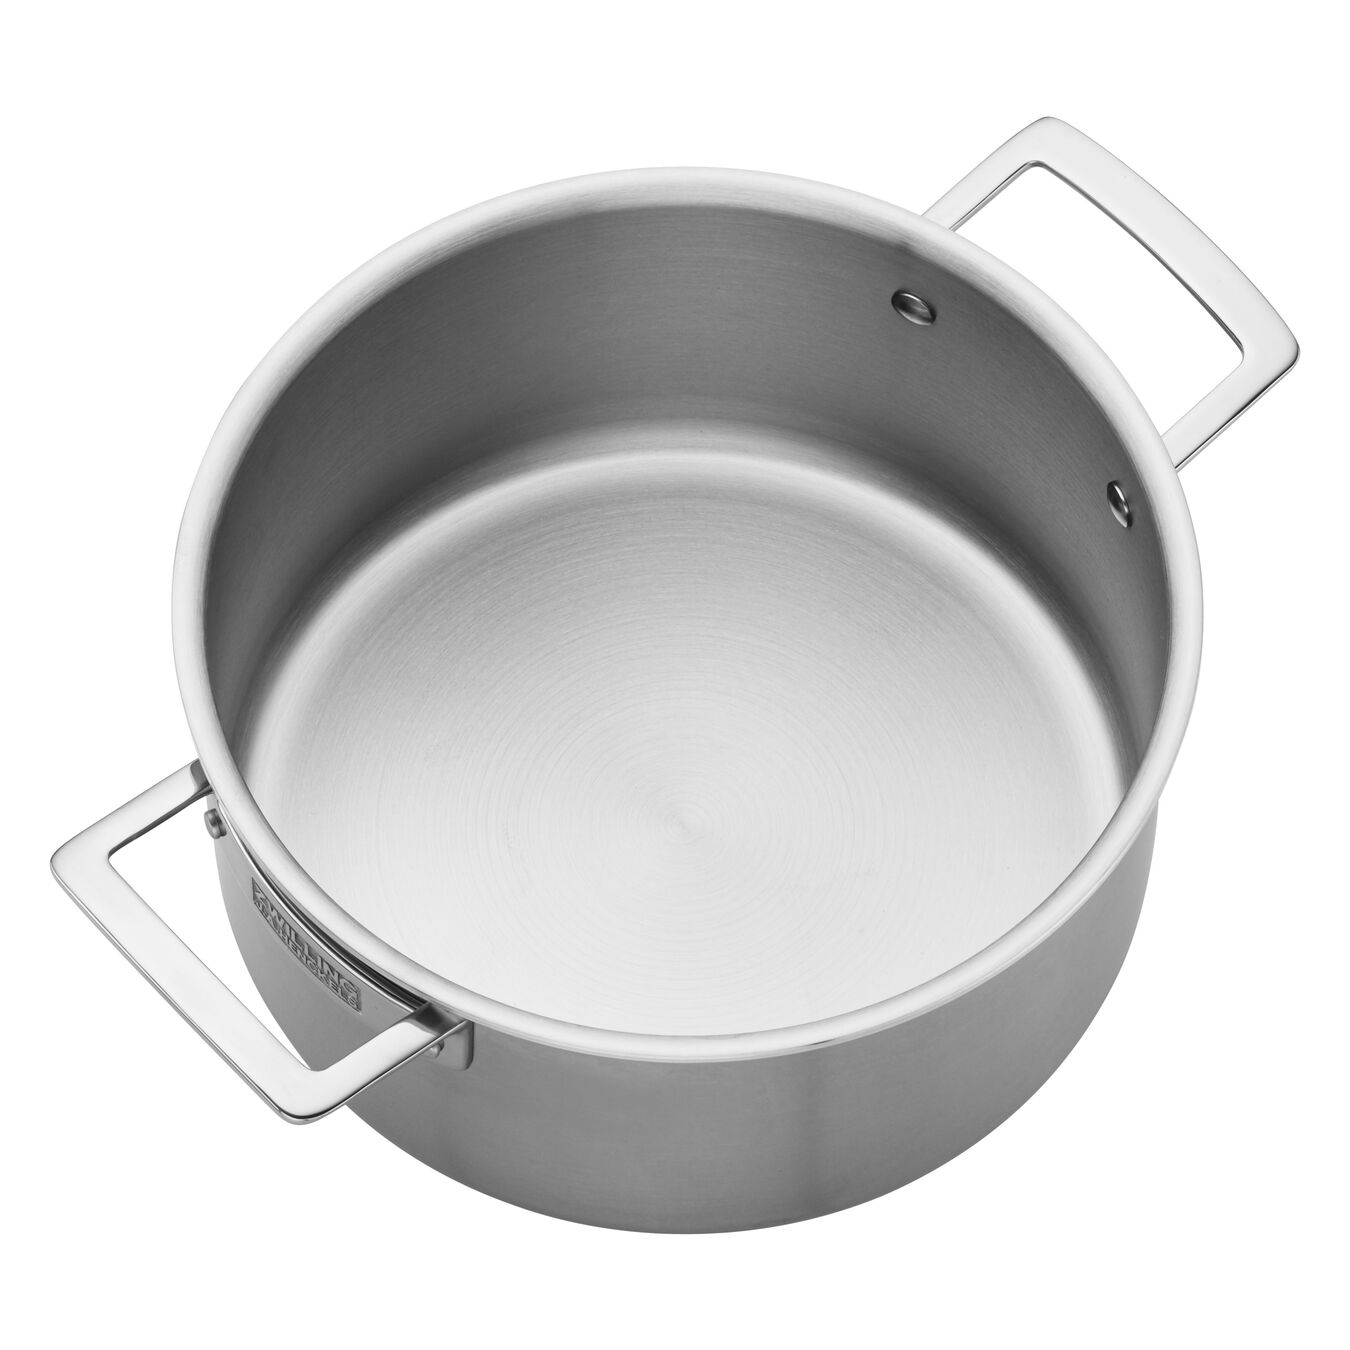 7 Piece 18/10 Stainless Steel Cookware set,,large 3